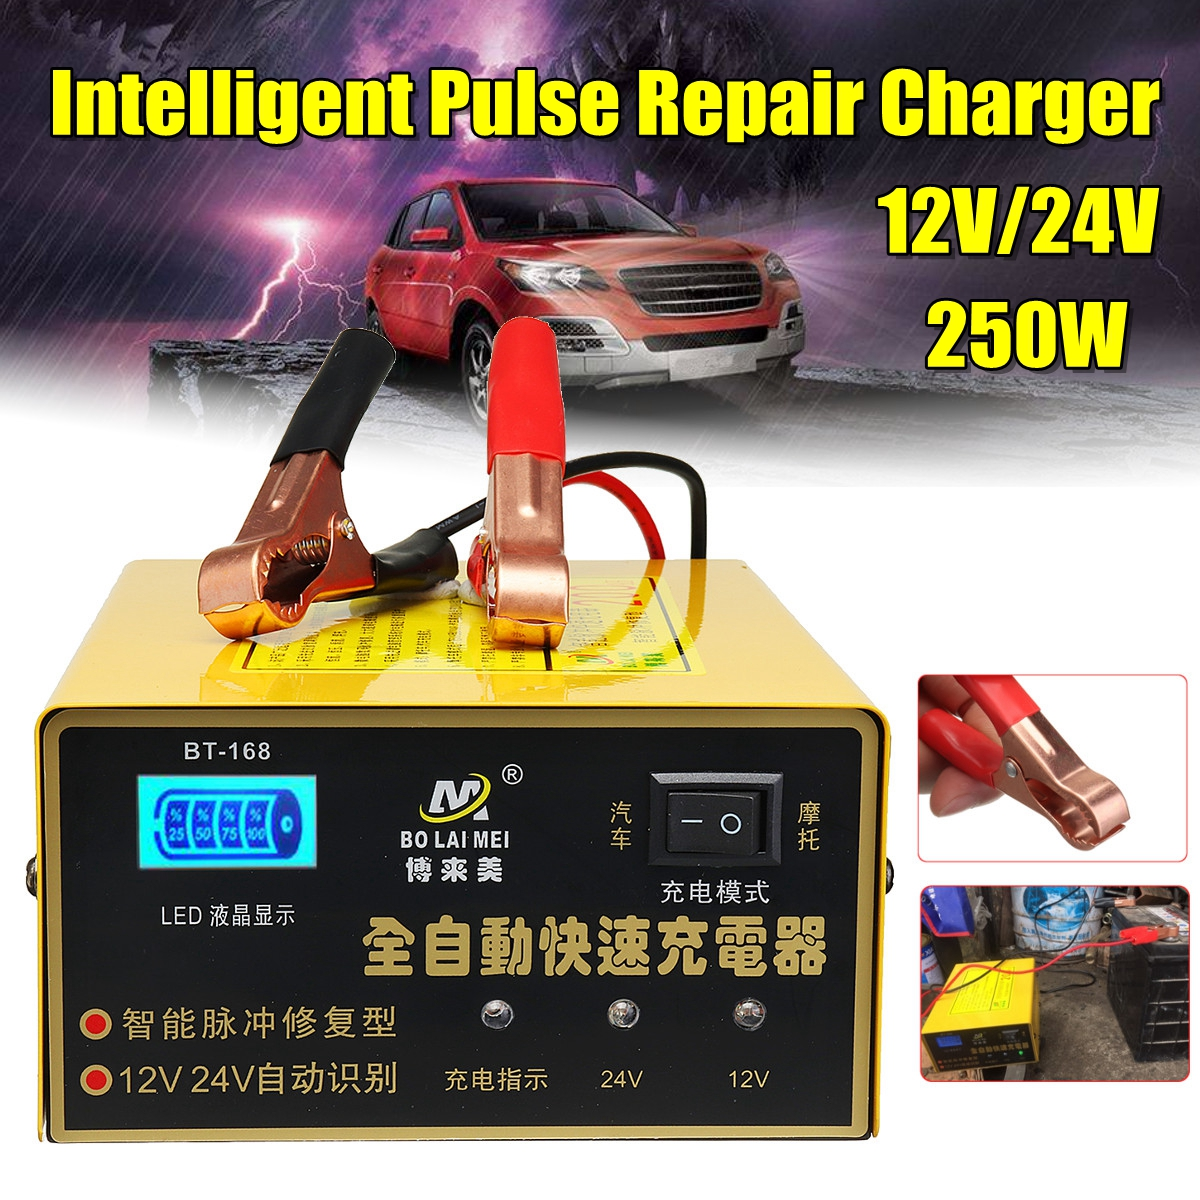 250W Automatic Electric Car Battery Charger Intelligent Pulse Repair Type 12V/24V LCD Car Emergency Charger Booster 5 Stage Mode